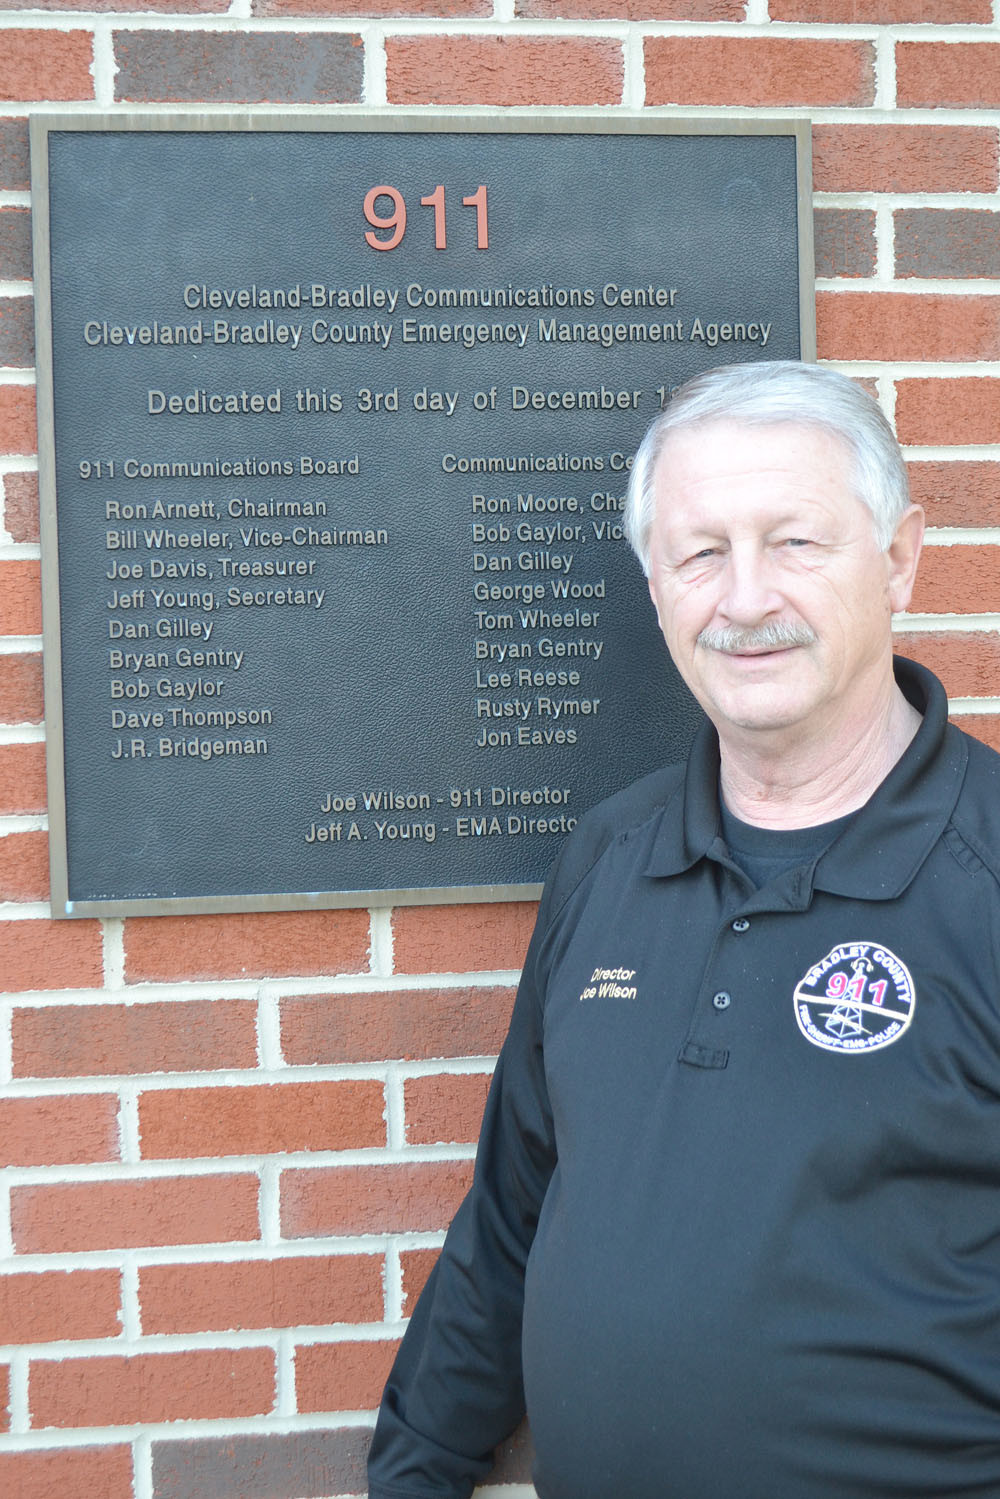 JOE WILSON stands at the dedication plaque outside the 911 center. The plaque includes the names of the county commissioners and members of the consolidated communication center.